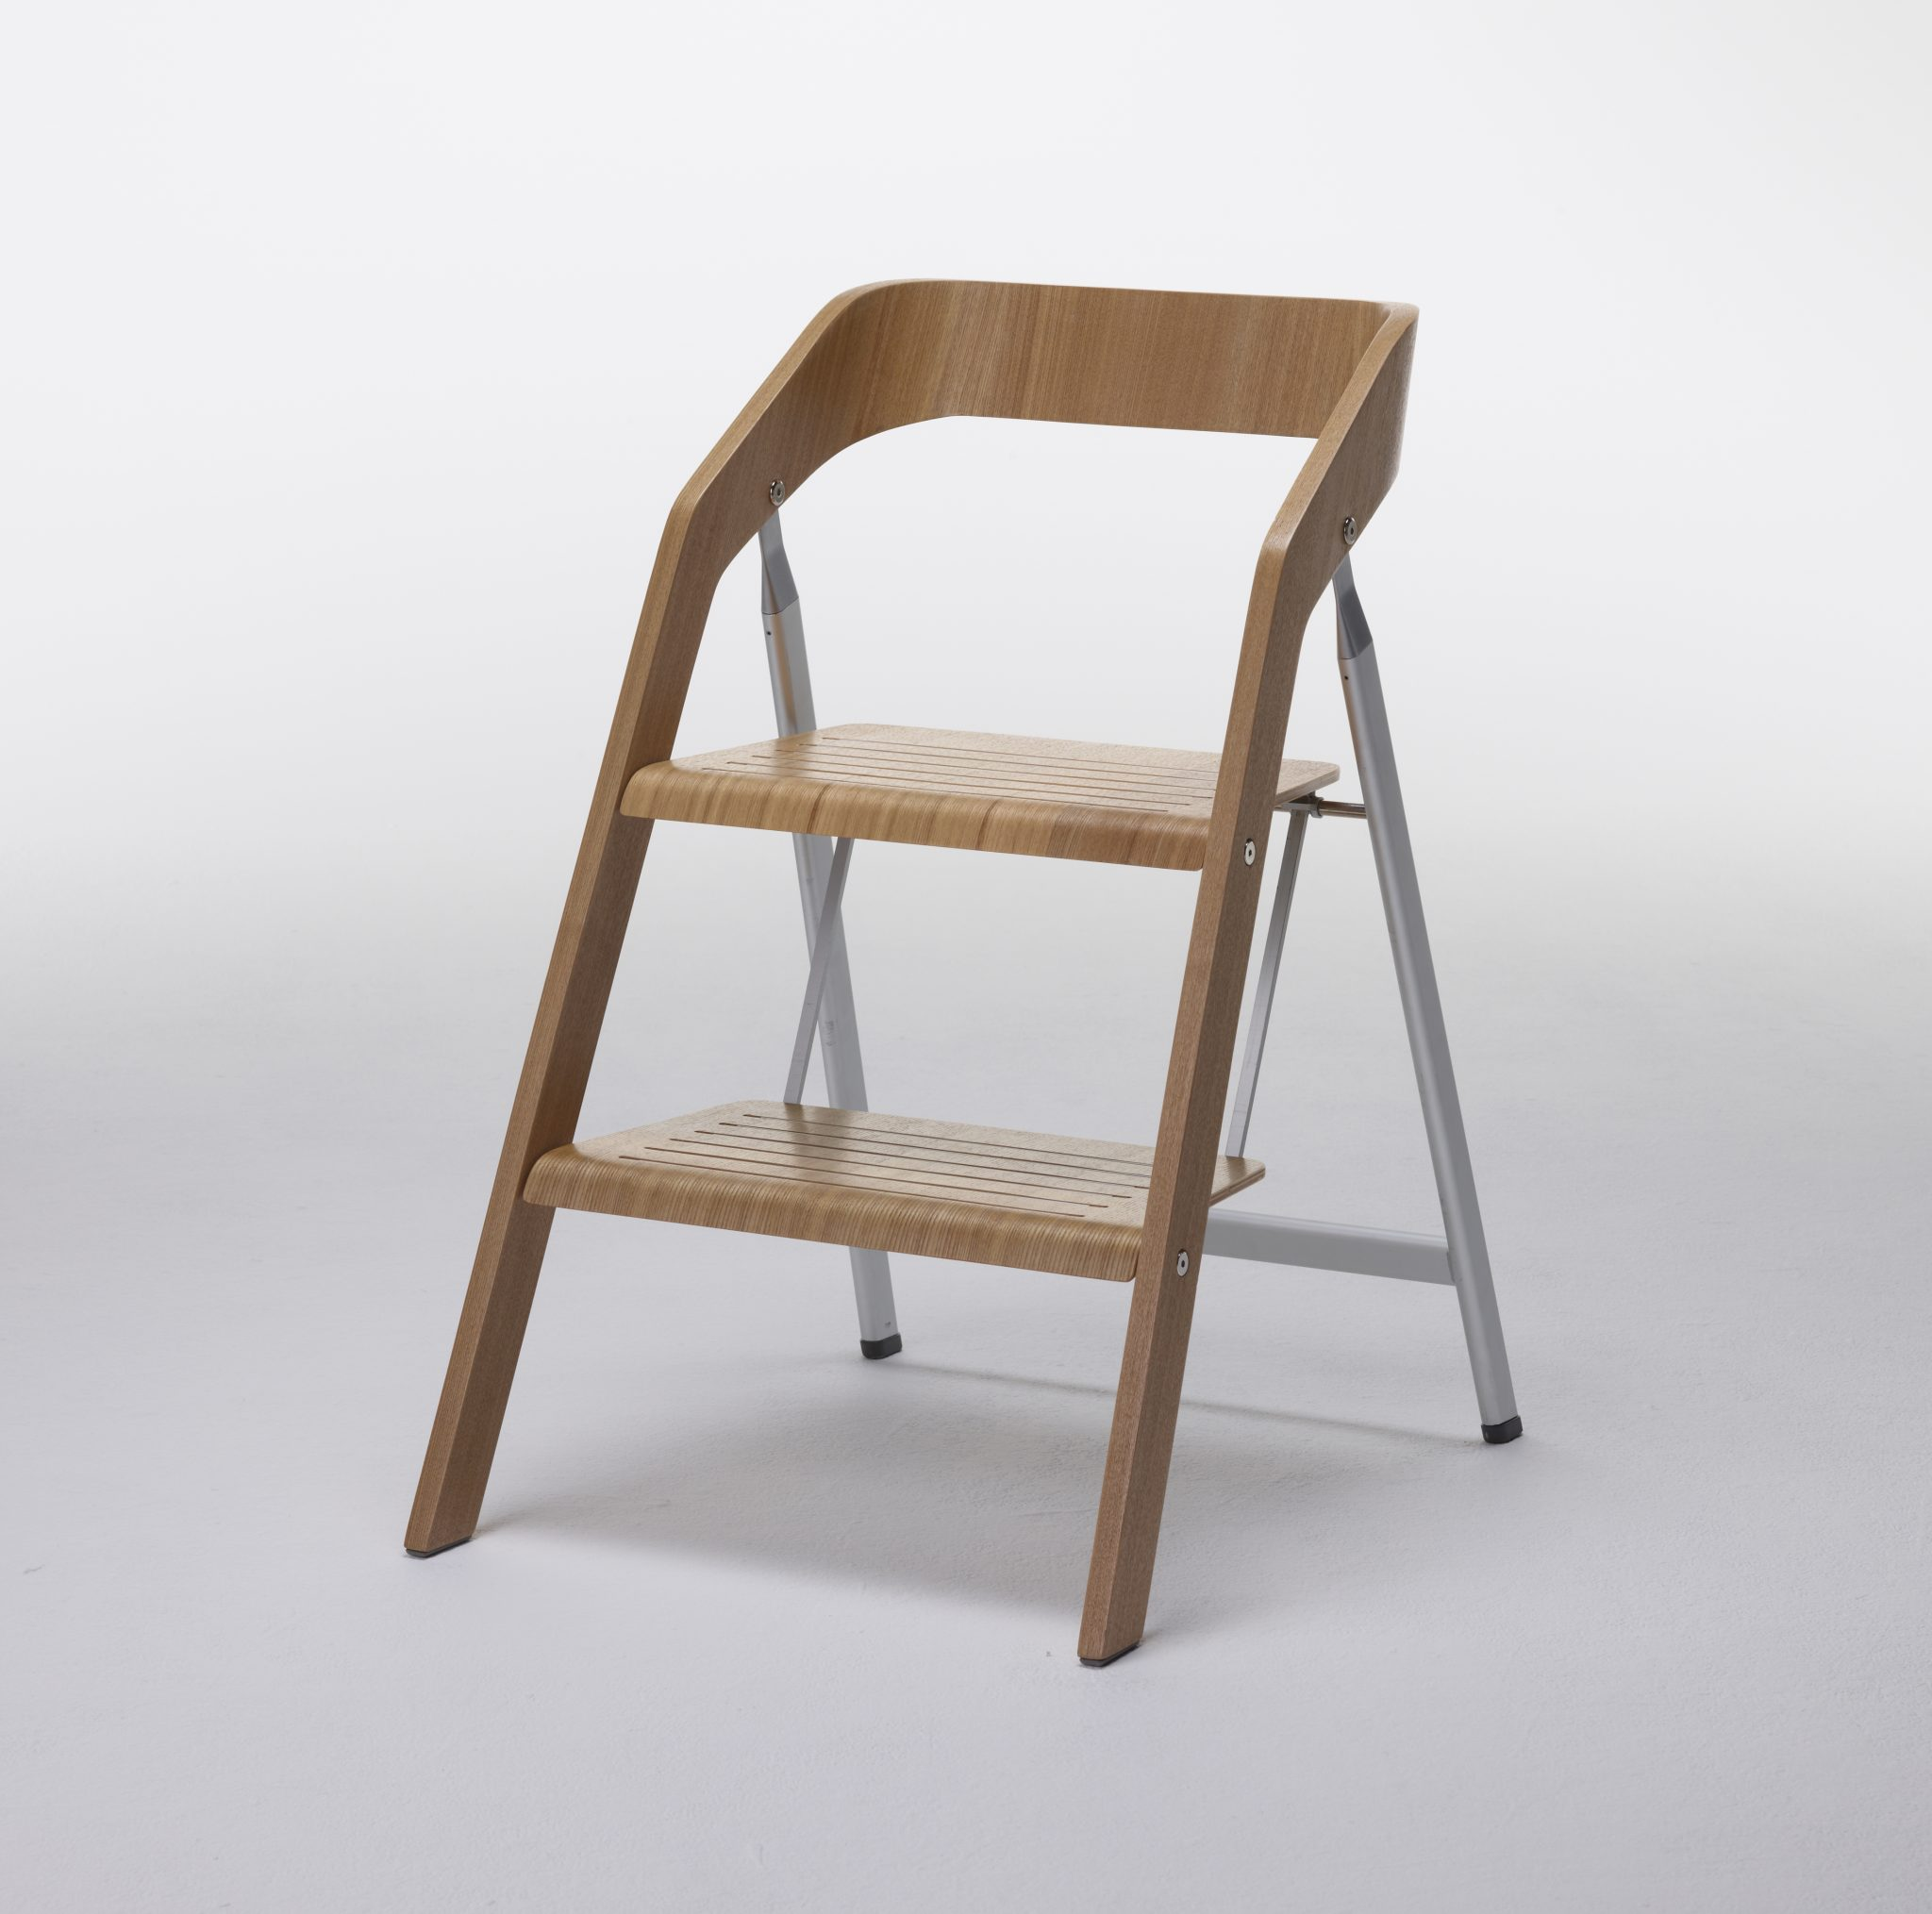 Marvelous Design Usit Design Caraccident5 Cool Chair Designs And Ideas Caraccident5Info